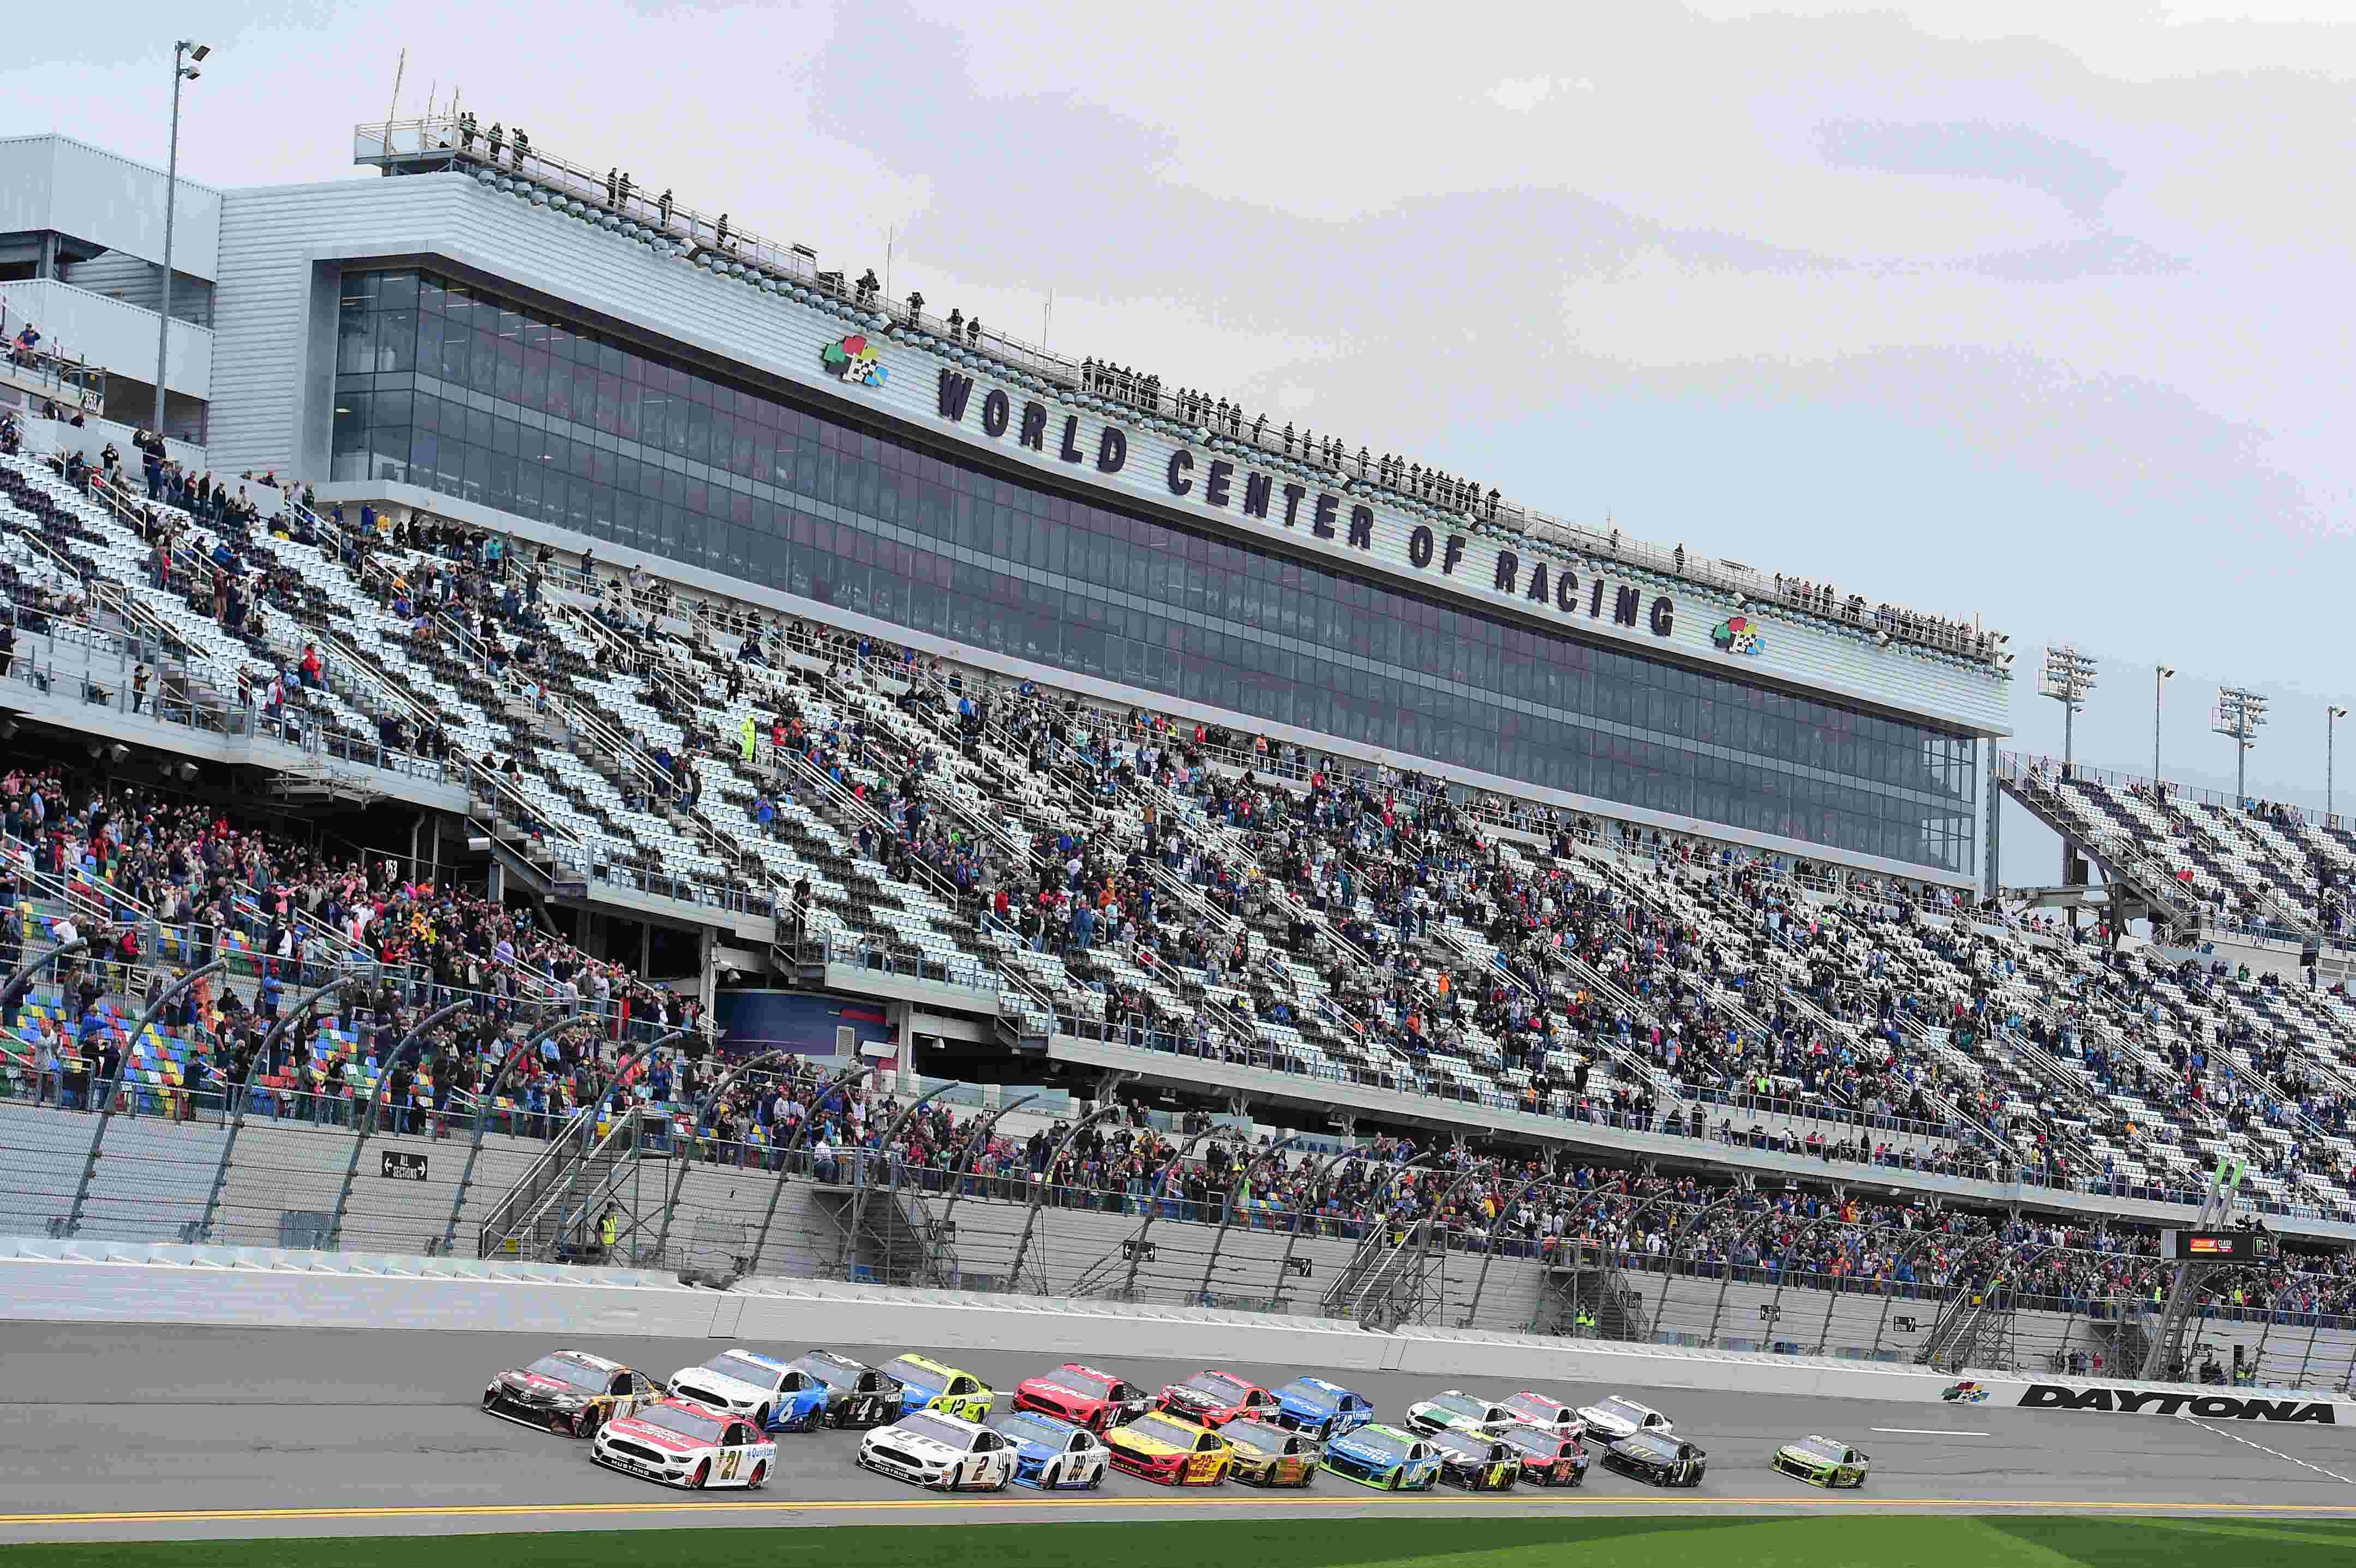 NASCAR: Drivers to watch in this year's Daytona 500